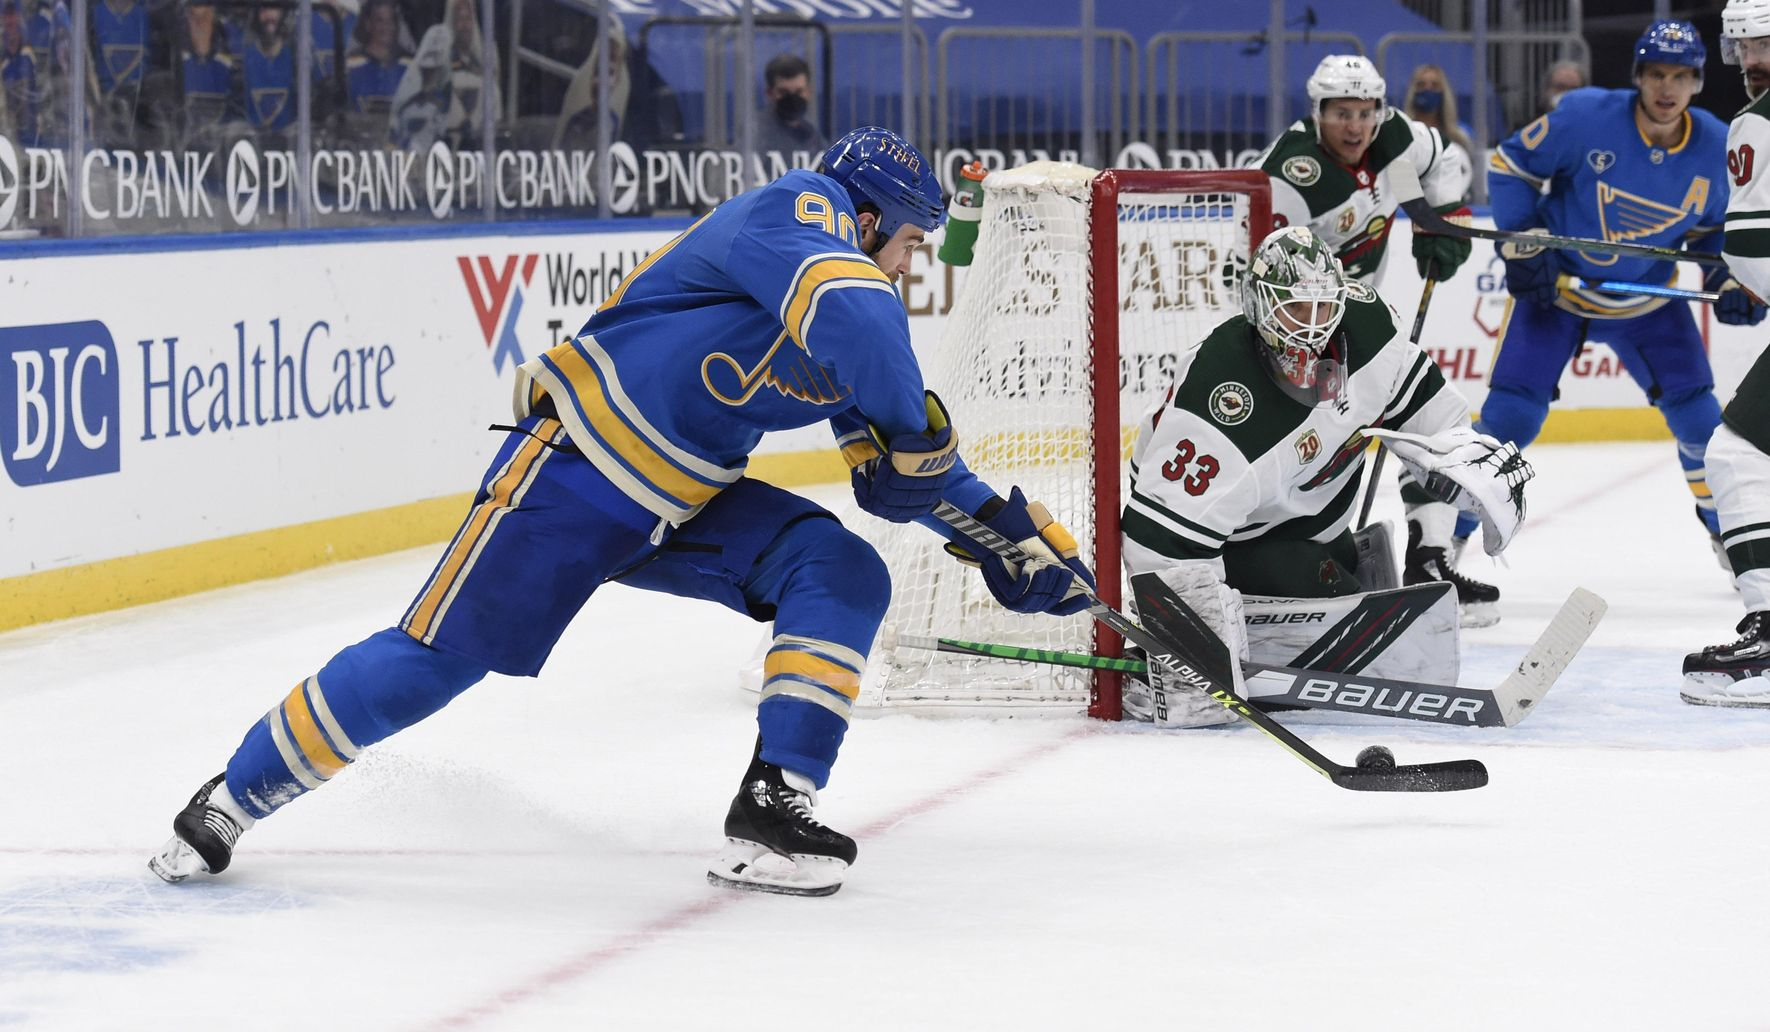 O'Reilly scores with 2 seconds left in OT, Blues beat Wild